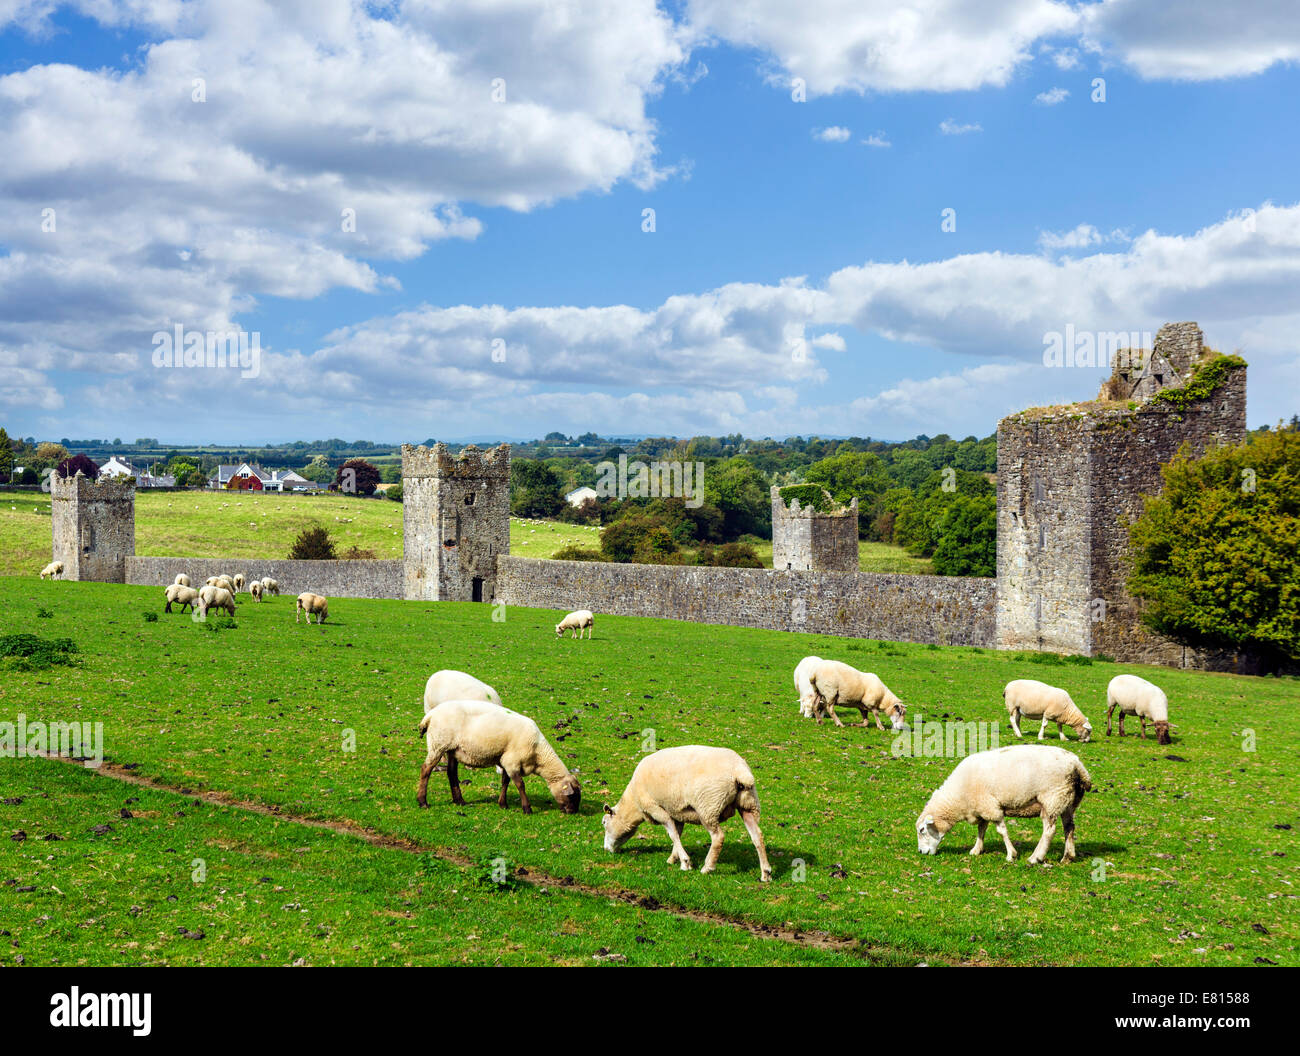 Sheep grazing in front of Kells Priory, County Kilkenny, Republic of Ireland - Stock Image